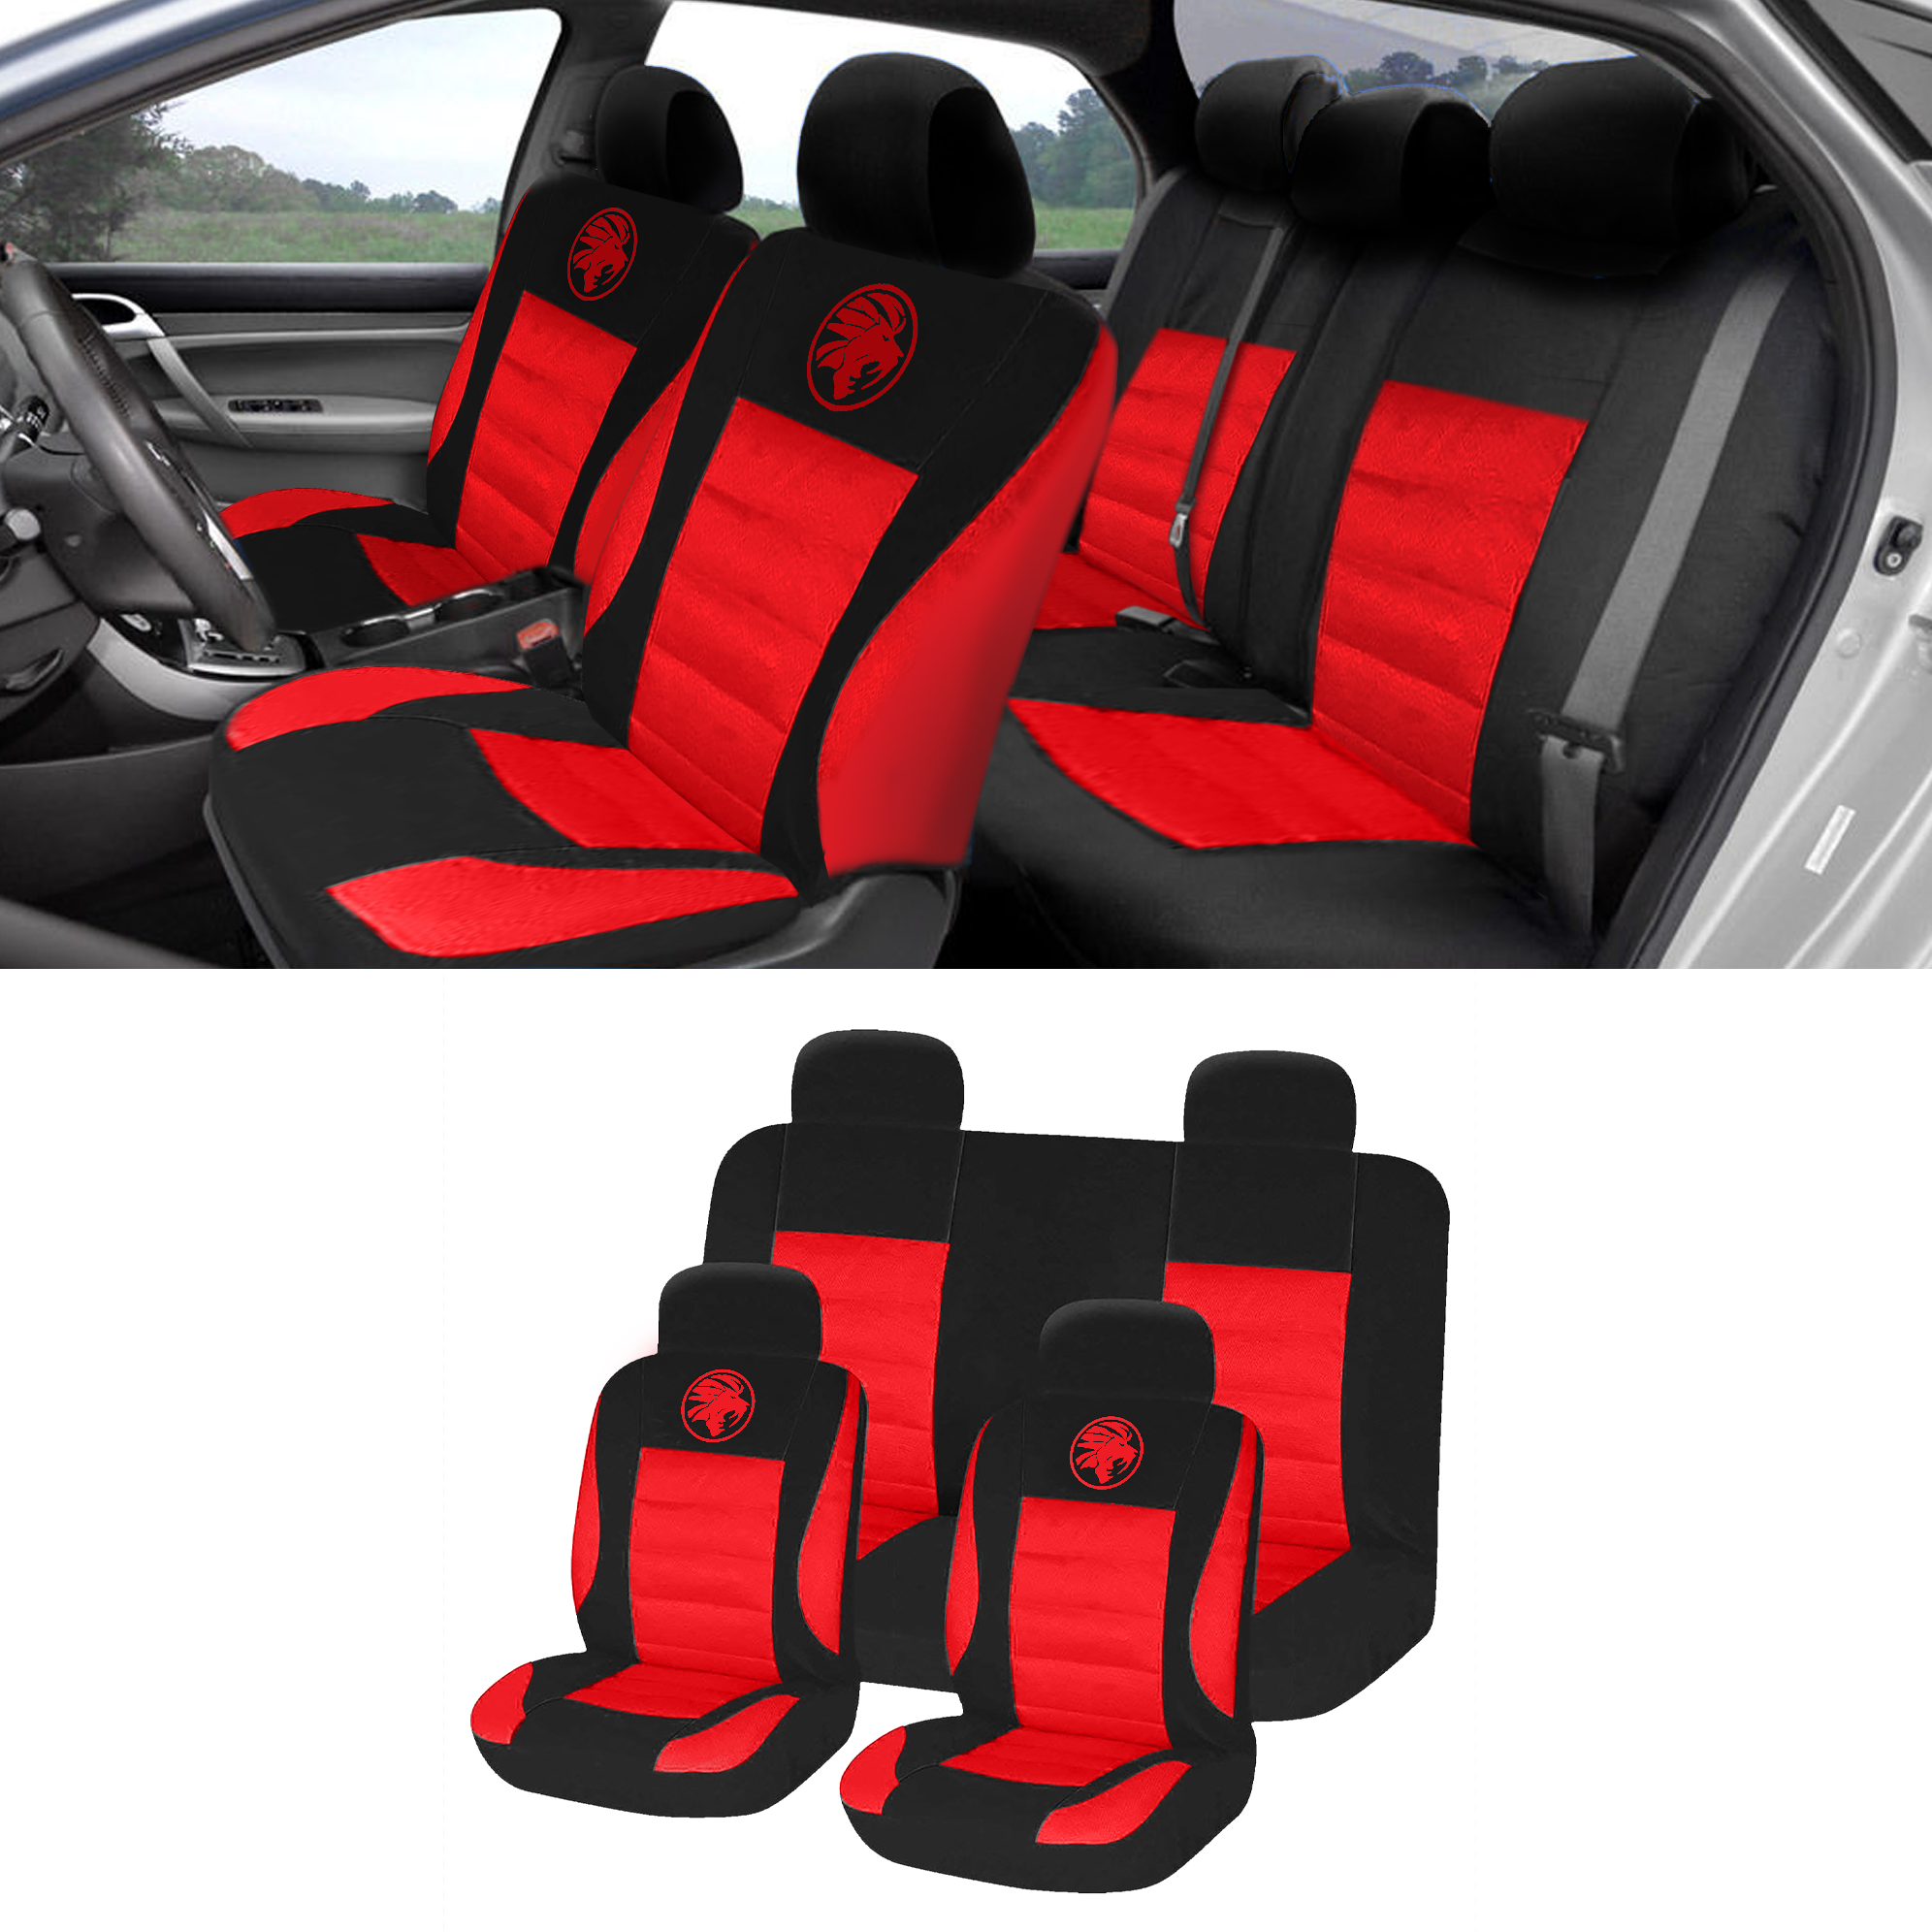 8pc Universal Car Seat Covers Set Protectors Washable Dog Pet Front Rear Red